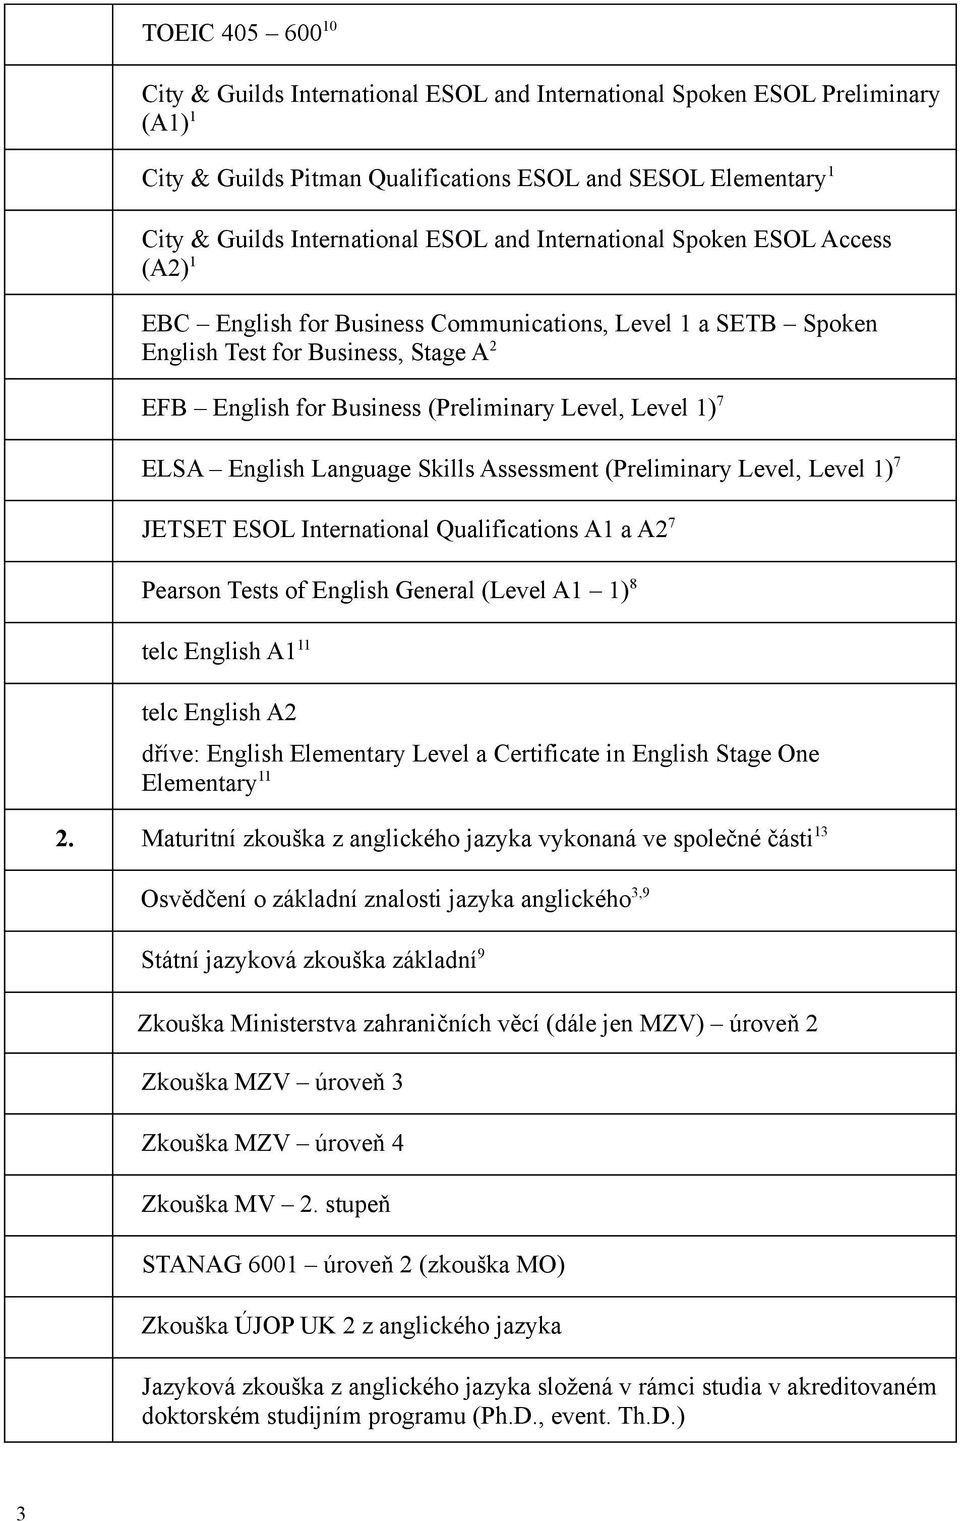 ELSA English Language Skills Assessment (Preliminary Level, Level 1) 7 JETSET ESOL International Qualifications A1 a A2 7 Pearson Tests of English General (Level A1 1) 8 telc English A1 11 telc